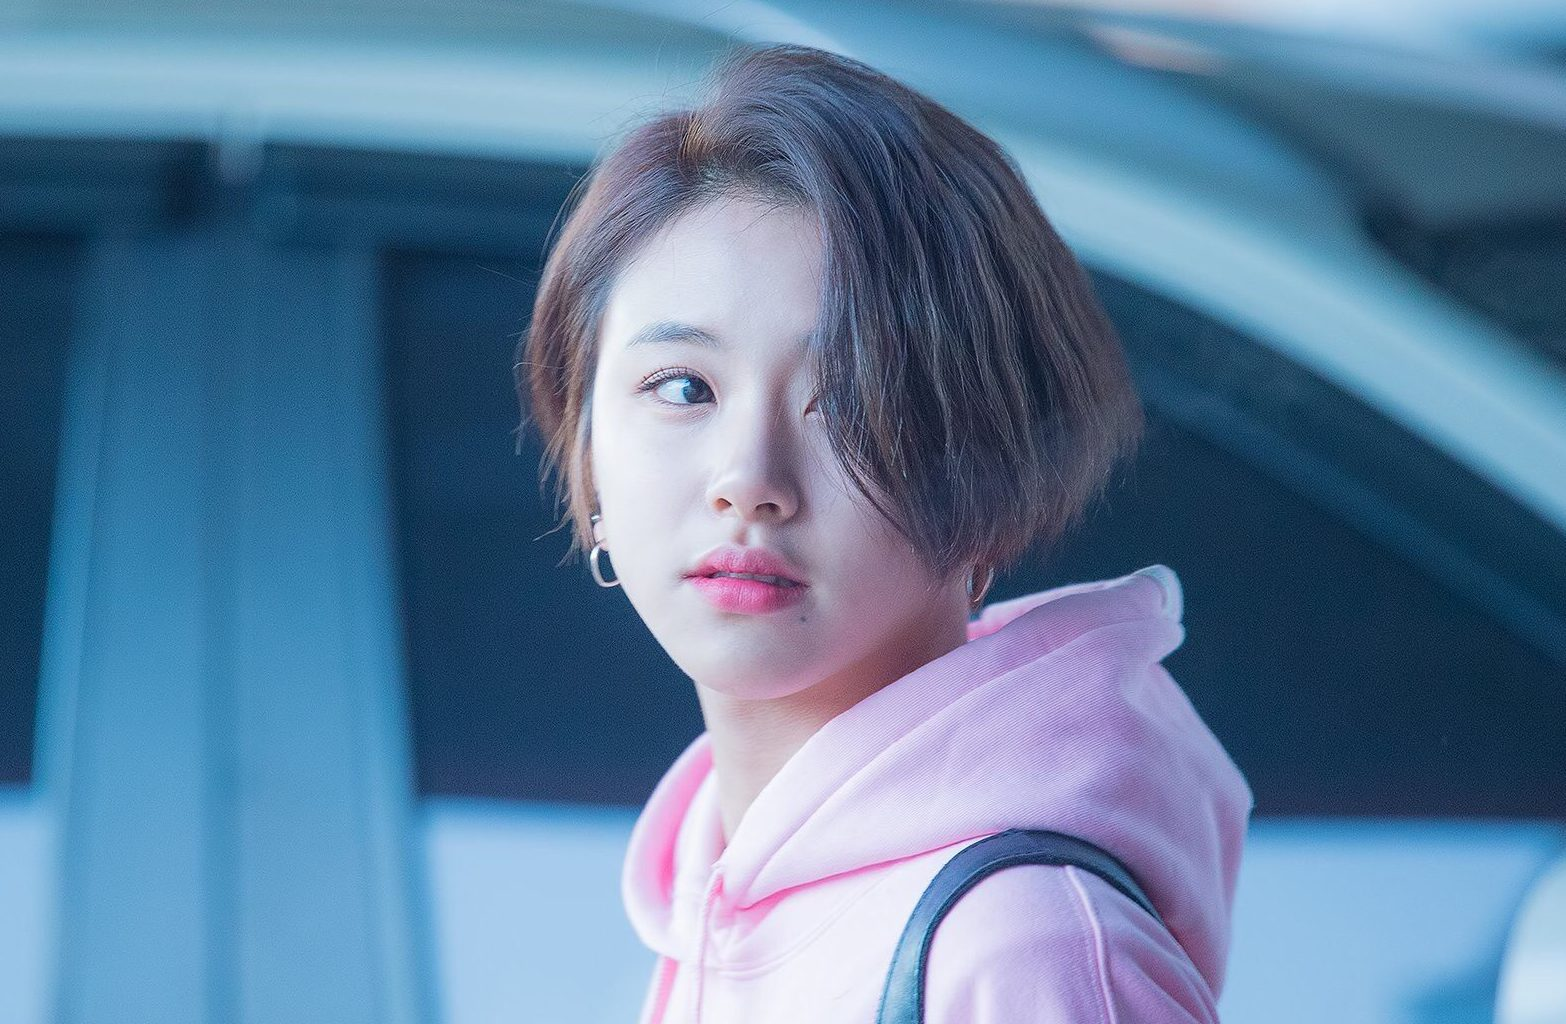 Twice Chaeyoung Explains The Reason Why She Decided To Cut